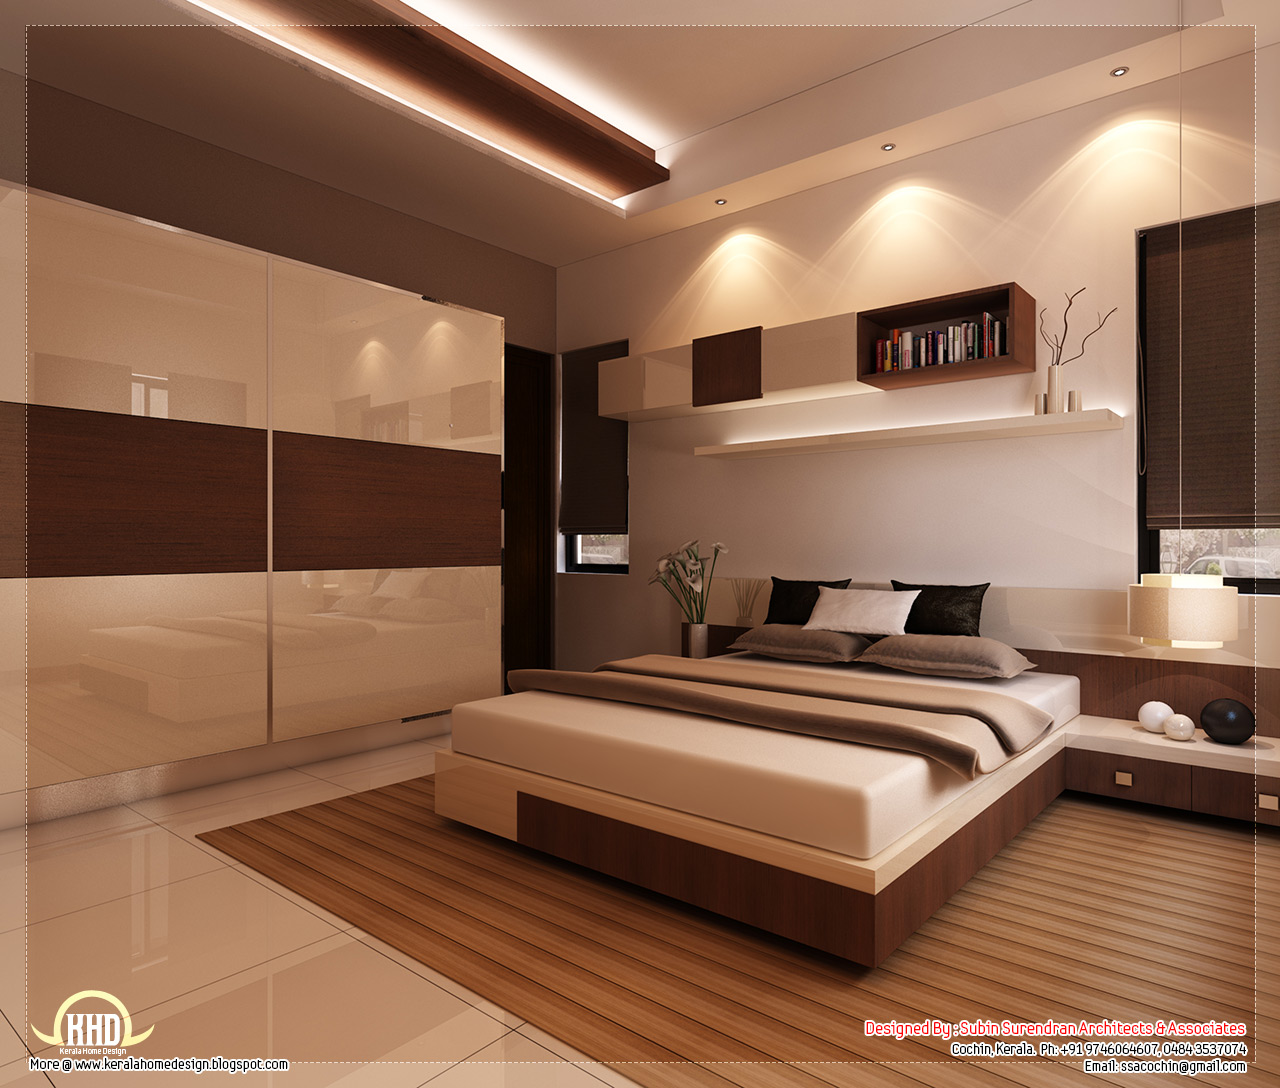 Interior design kerala model houses